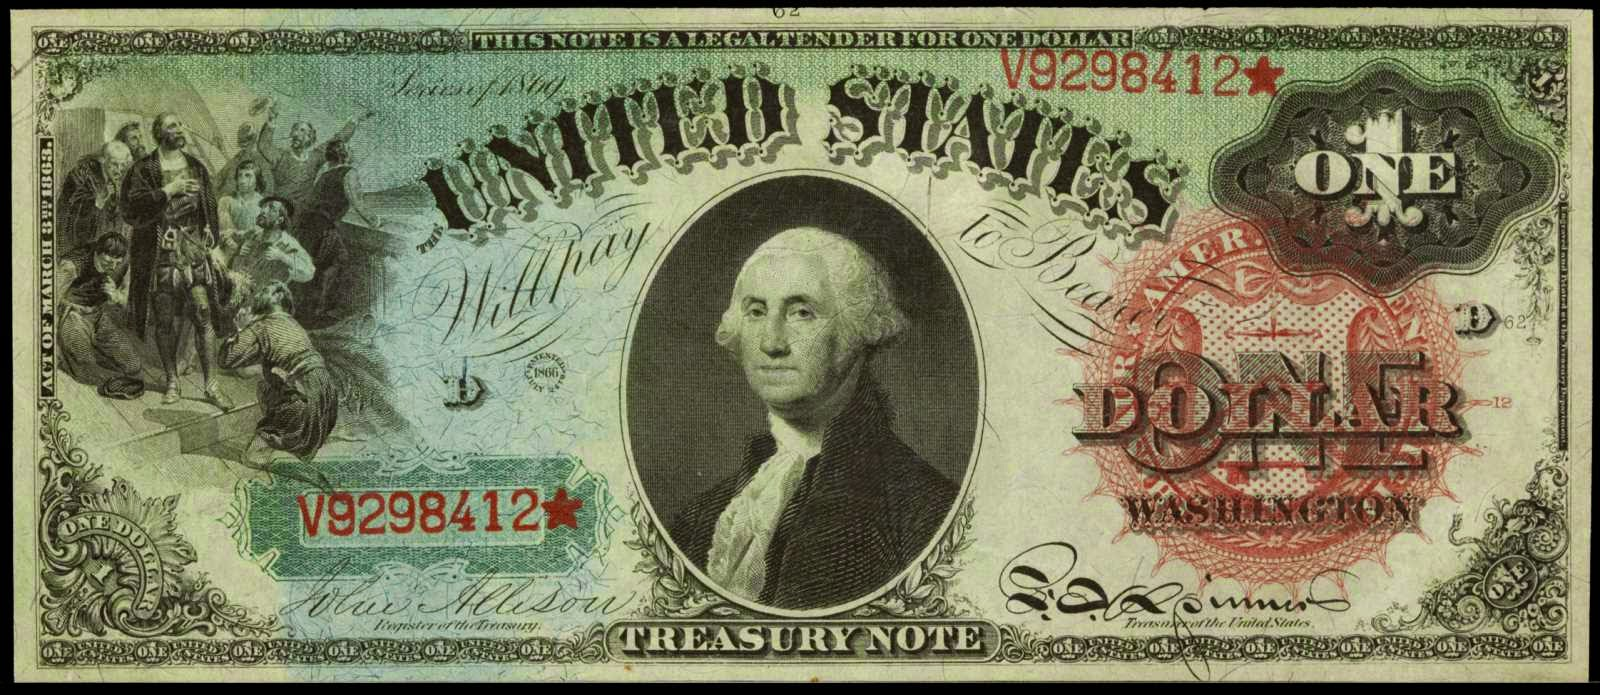 1869 One Dollar Legal Tender Rainbow Notes